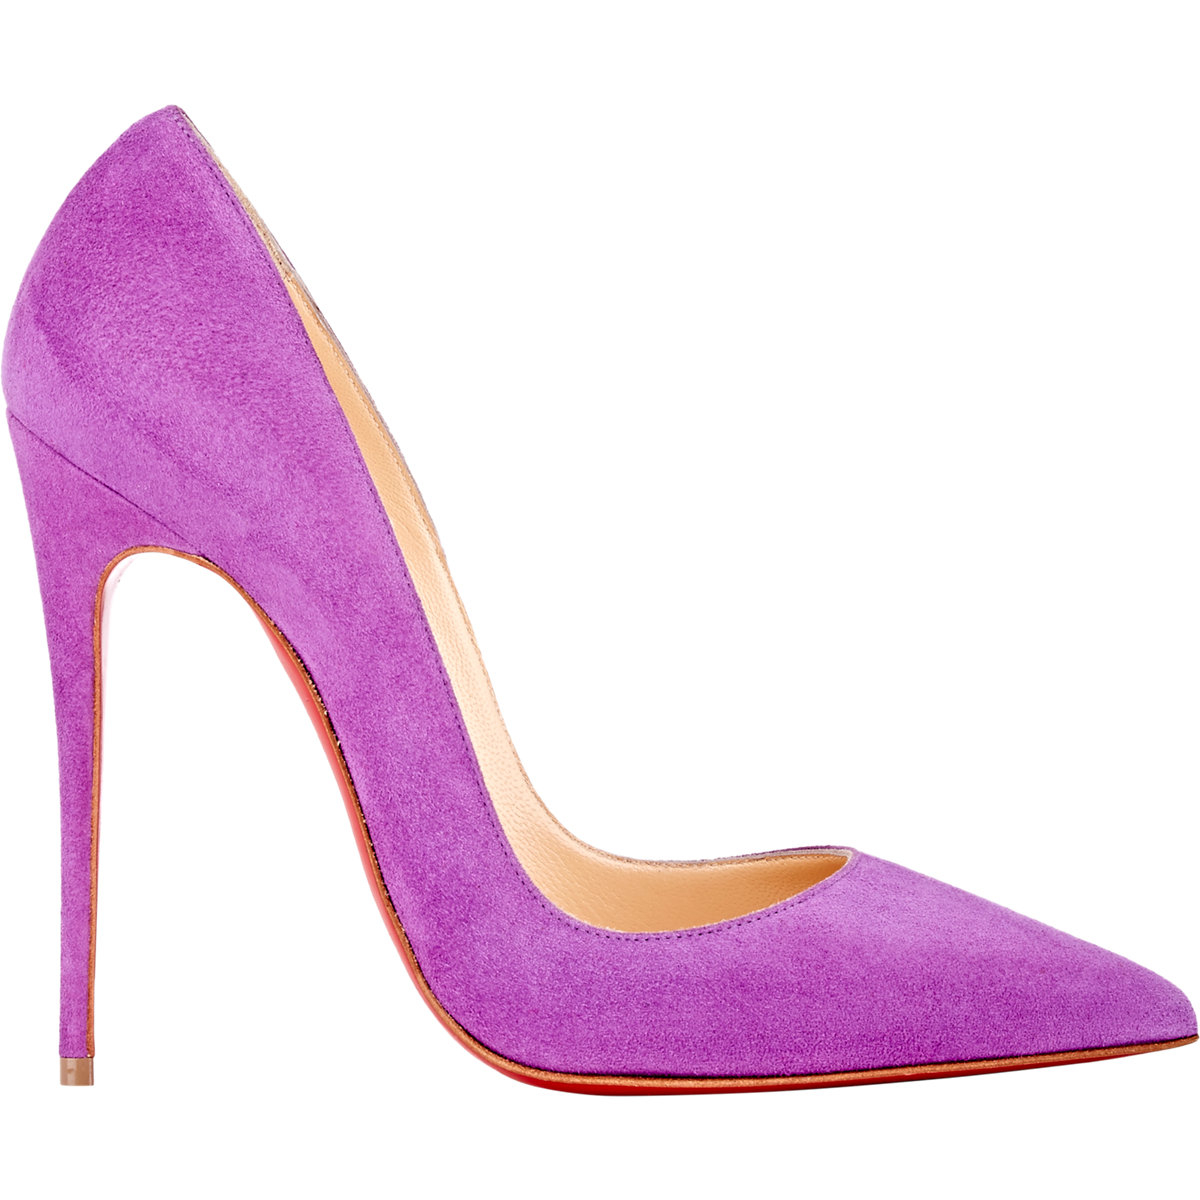 Christian louboutin so kate pumps in purple lyst